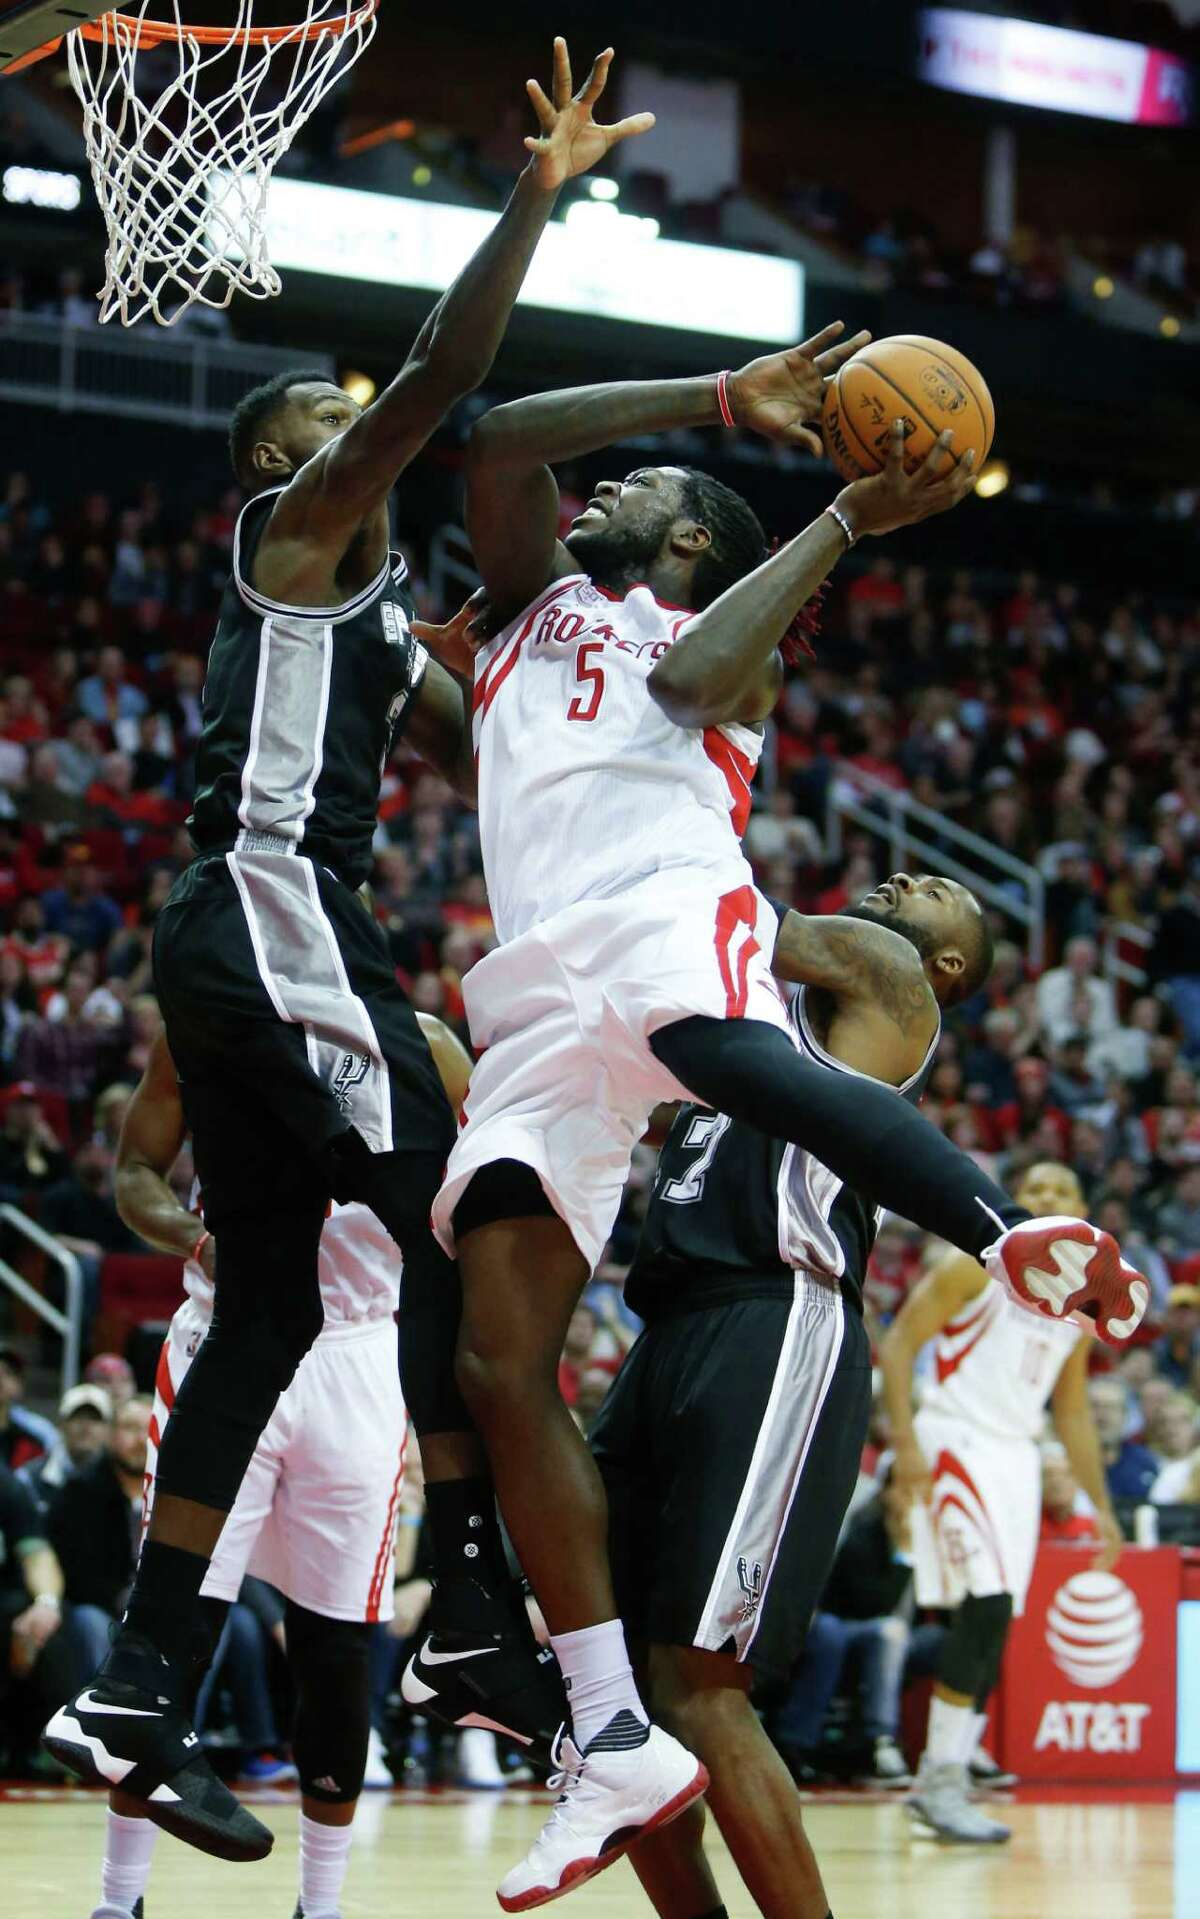 The Rockets praise Montrezl Harrell (5) for his ability to finish in the paint even though he routinely gives up a few inches to his counterpart under the basket.